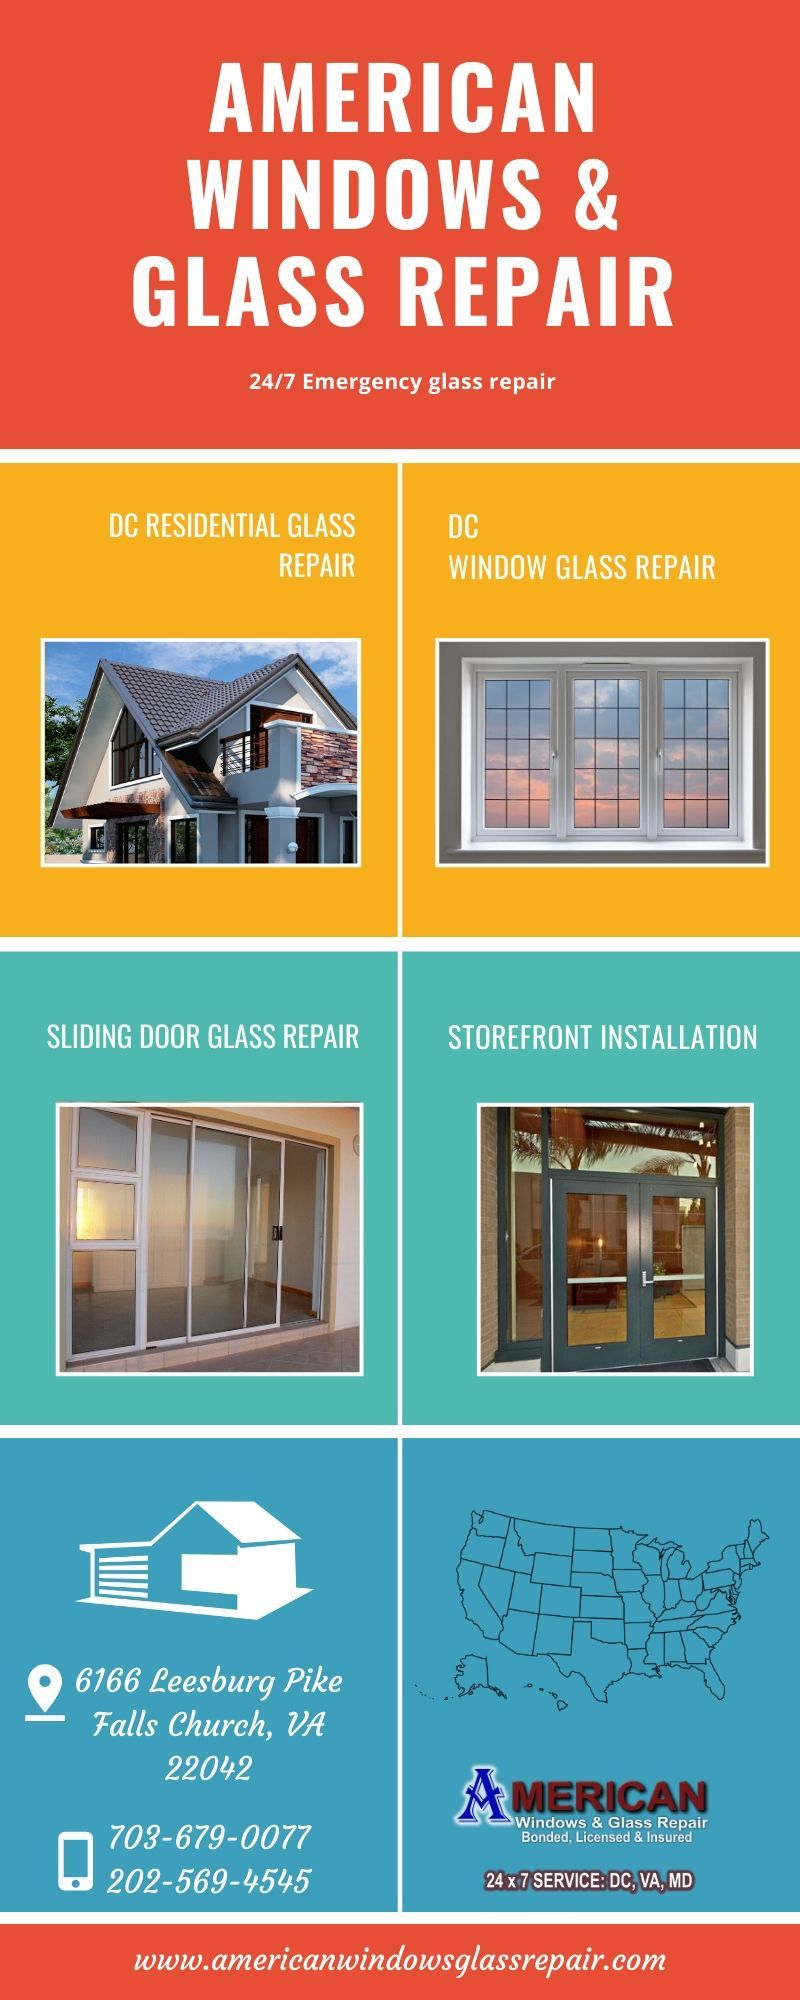 Call Sliding Door Glass Repair Specialists As We Have Some Expertise In Lower Cost Sliding Glass Door Repa In 2020 Glass Repair Sliding Glass Door Repair Sliding Doors